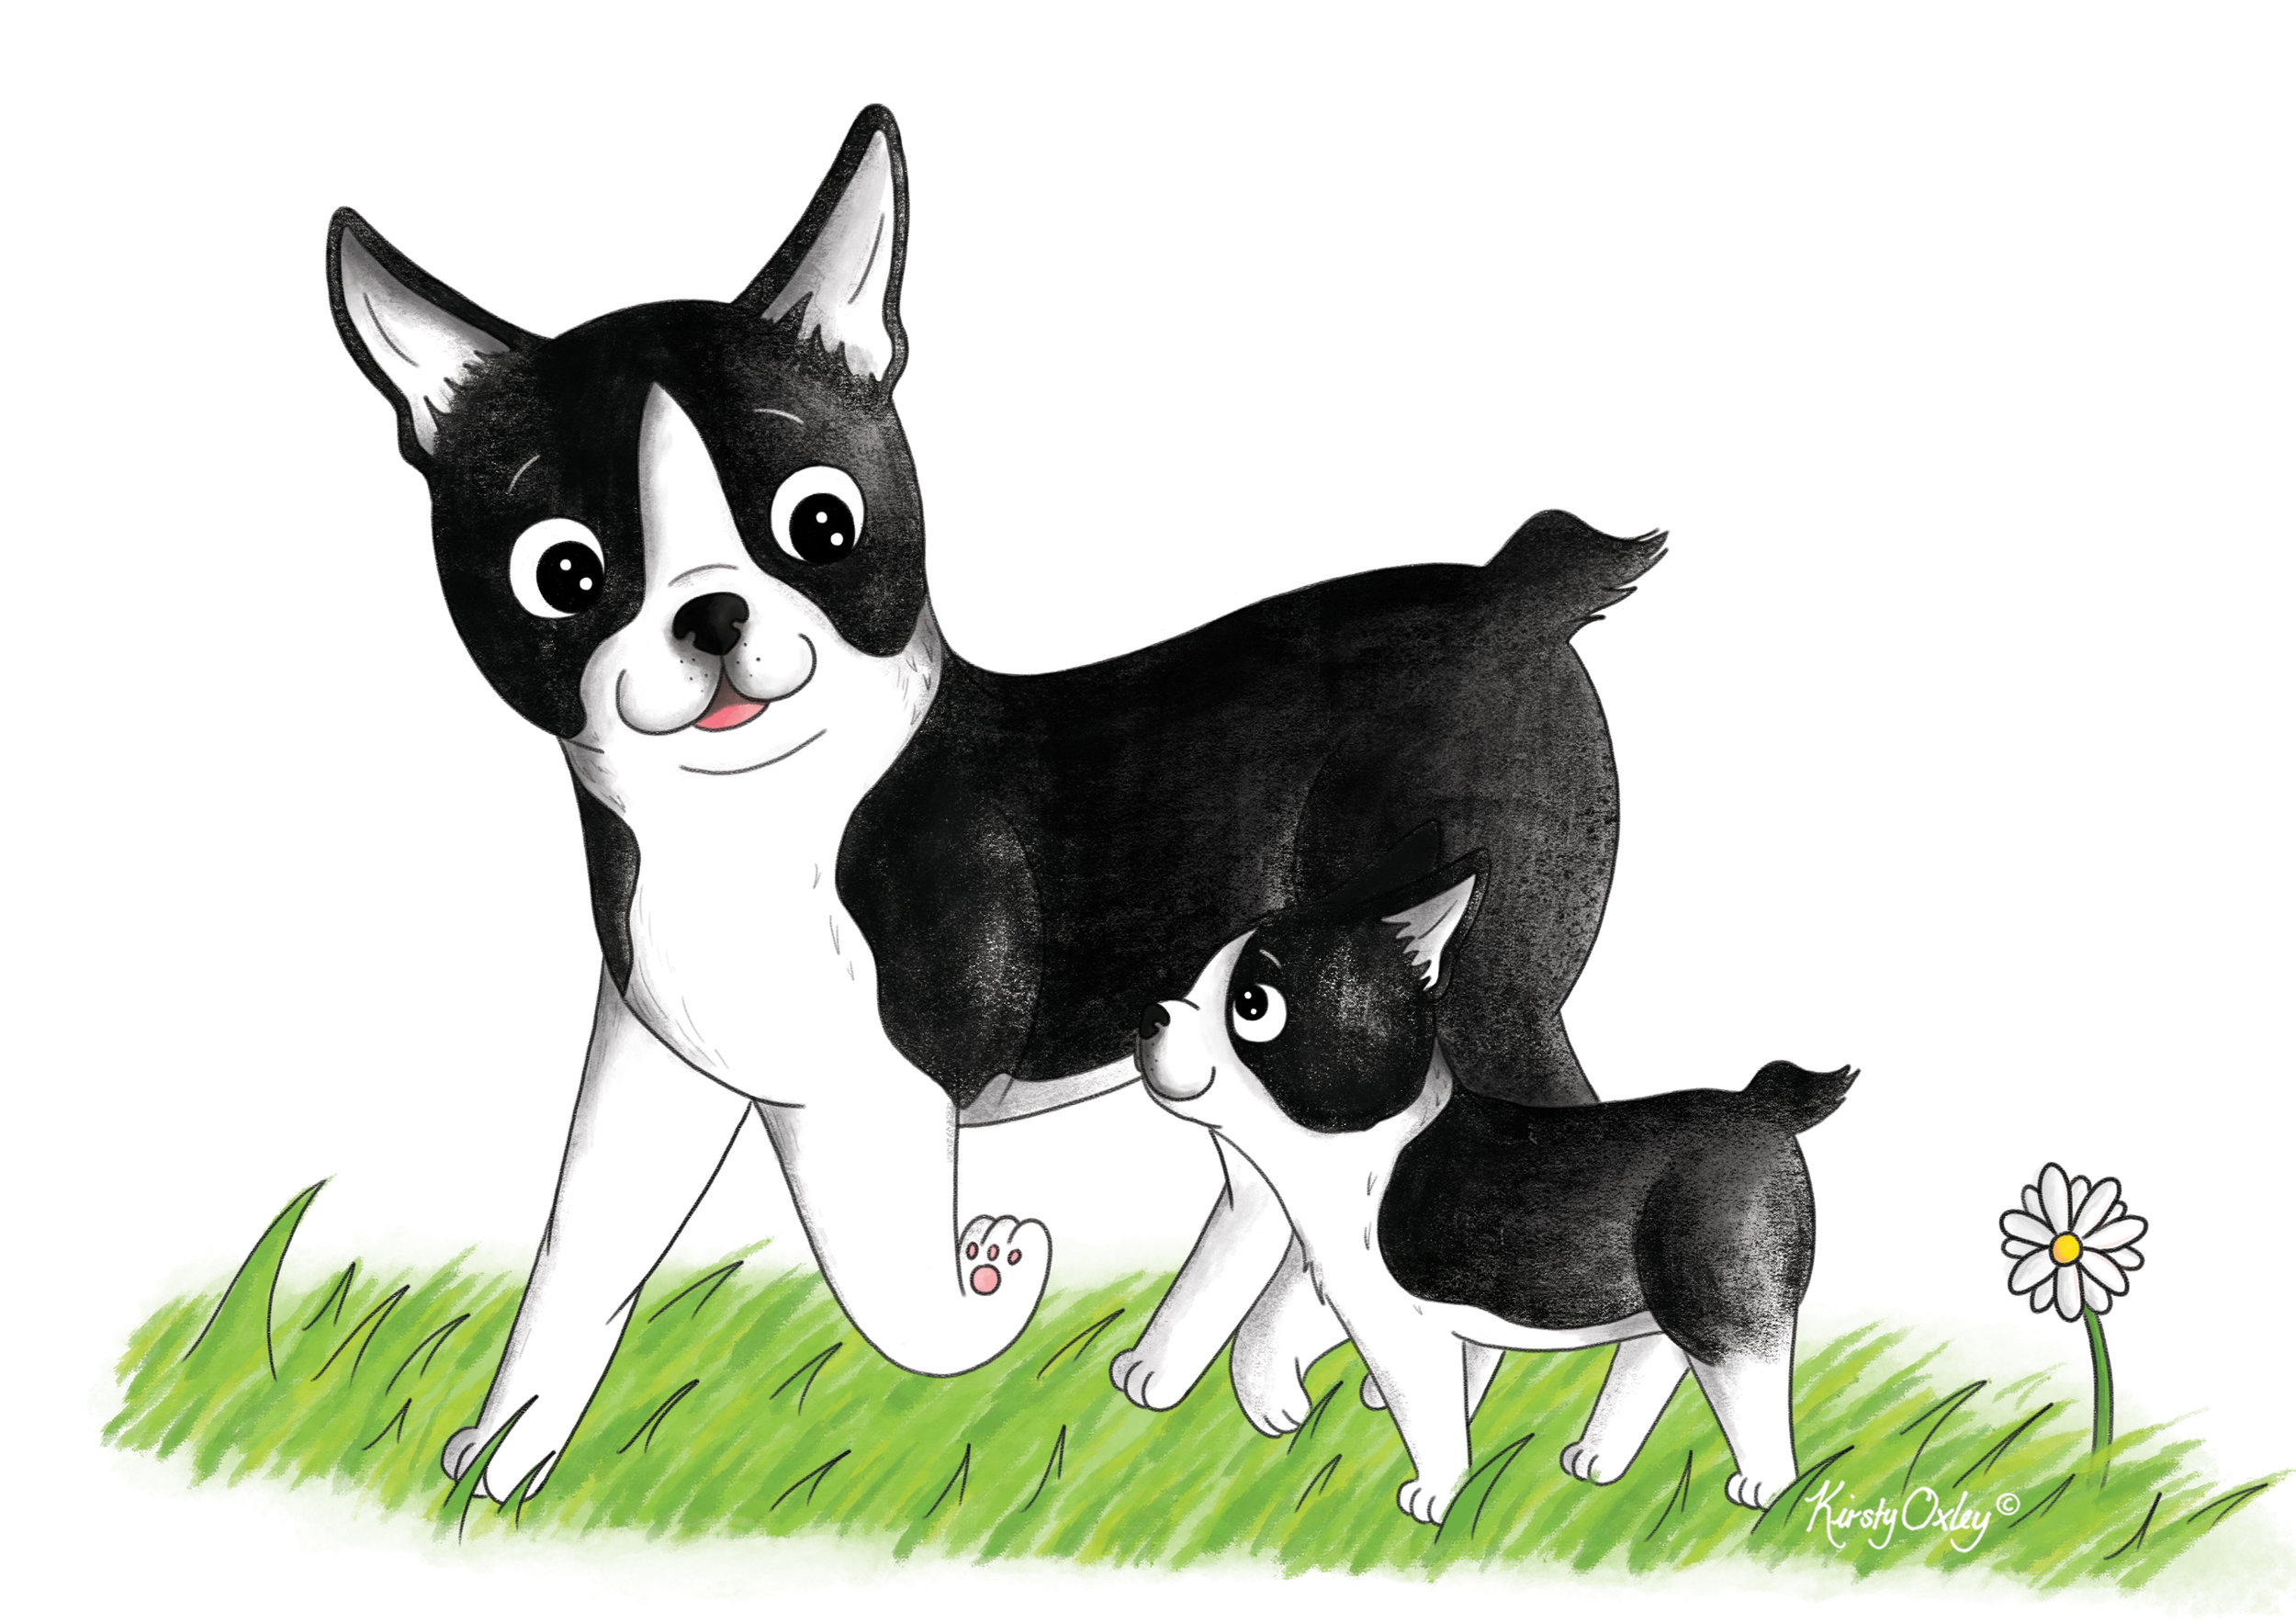 Mothers_Day_Boston_Terrier_Kirsty_Oxley_Illustration .jpg